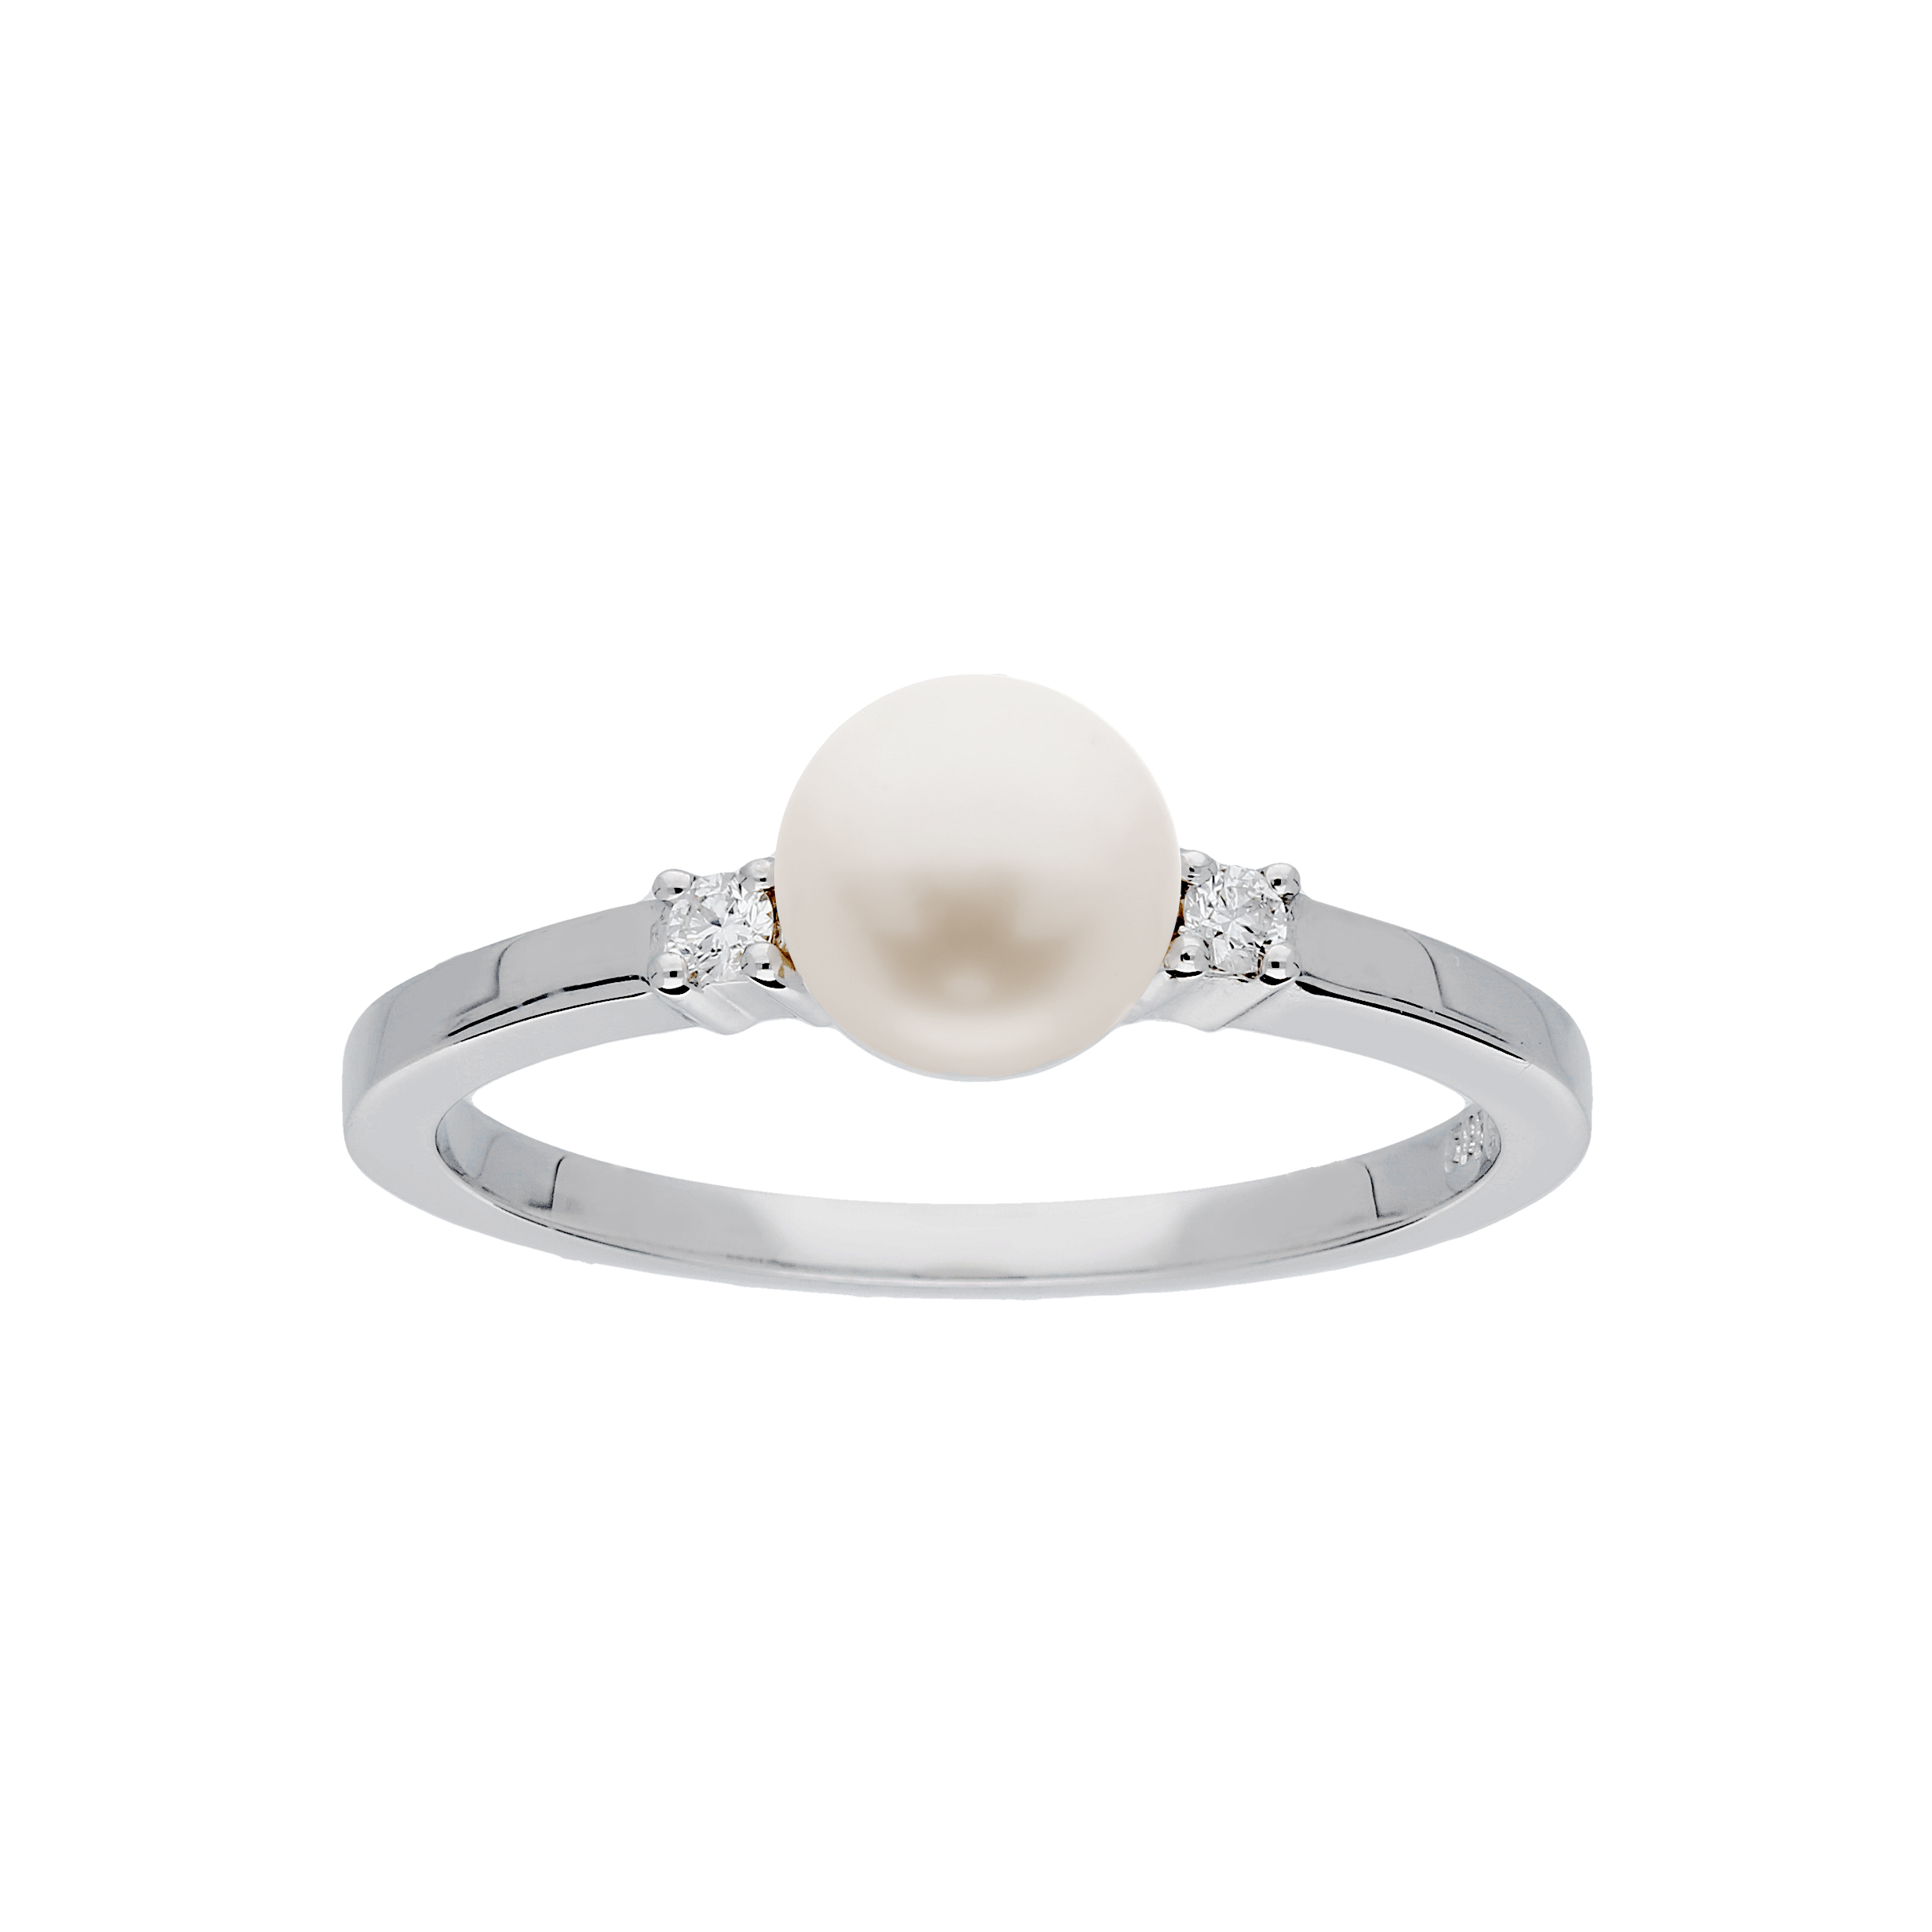 Glow Witgouden Ring Glanzend Parel Diamant 2 0.04ct G si 214.3025.54